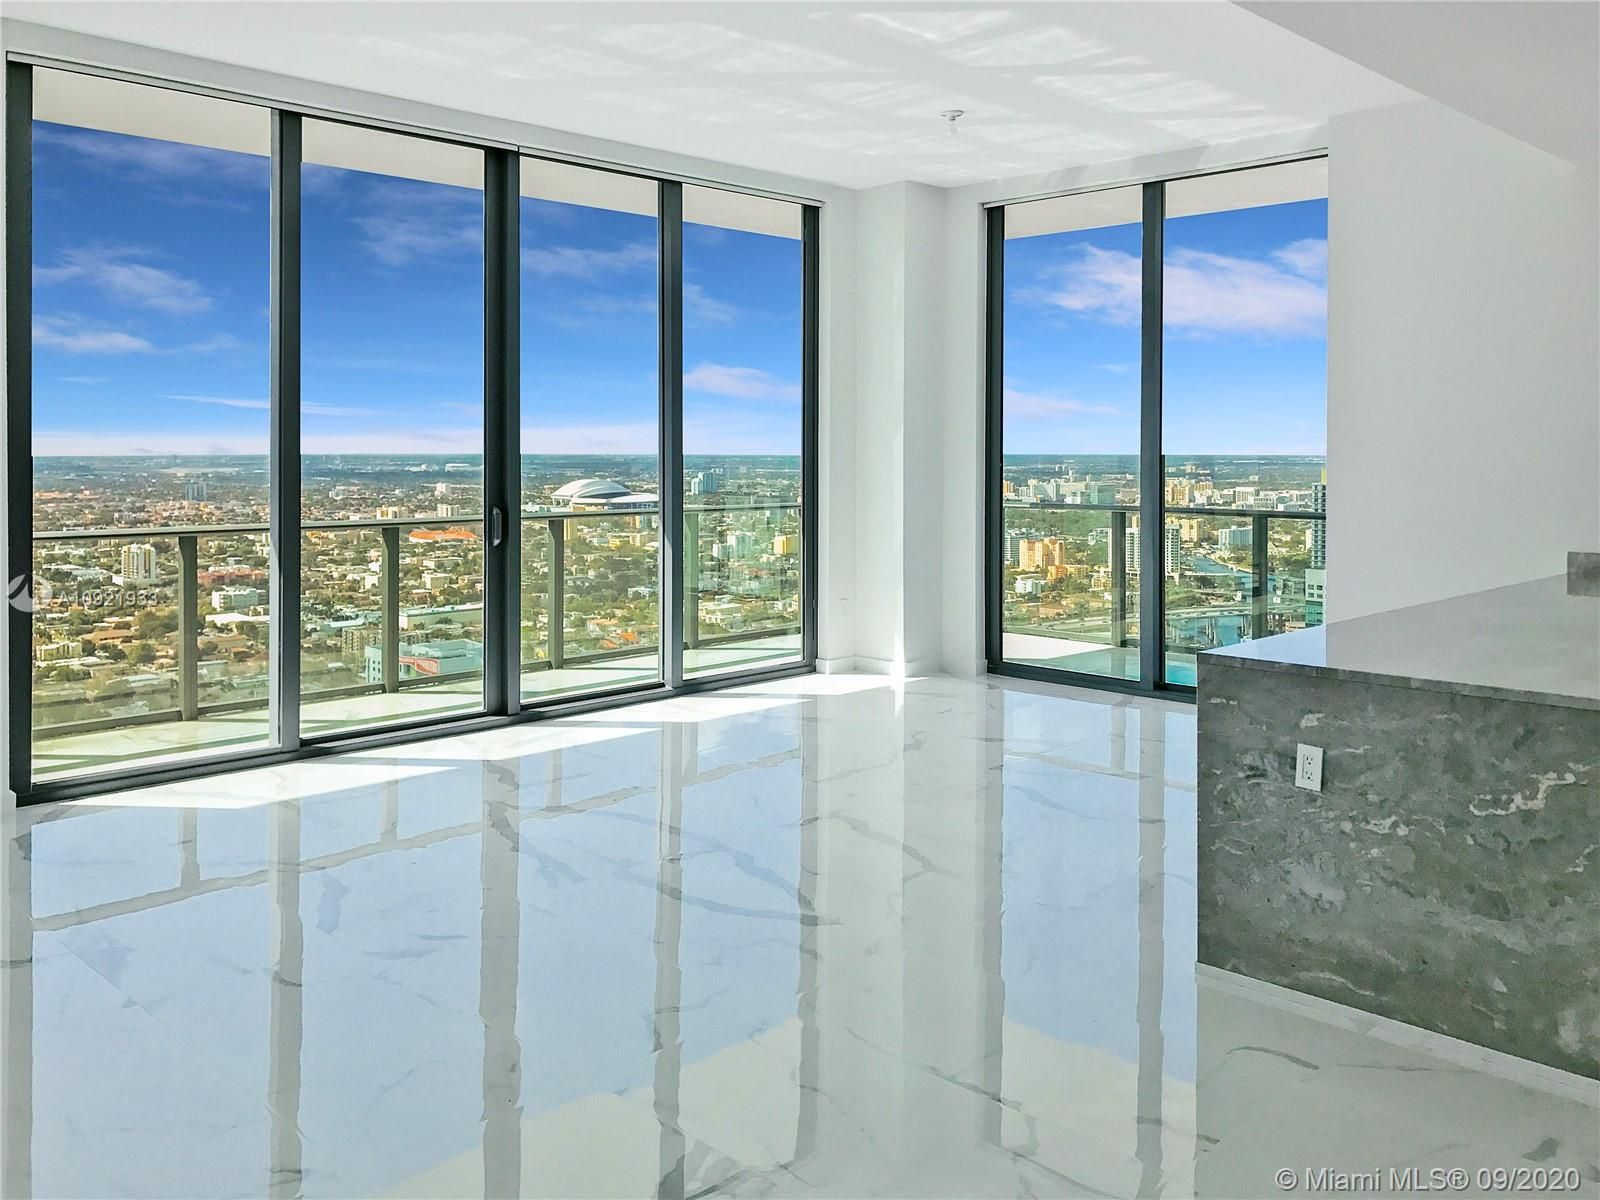 THE RESIDENCES AT SLS BRICKELL. 3 BEDRROMS - 2 1/2 BATHS PLUS DEN PENTHOUSE. FLOOR TO CEILING WINDOWS AN DOORS. ENJOY PANORAMIC VIEWS IN ALL THE OF THE CONFORT AND CONVENIENCE OF LIFE IN A 5 STAR HOTEL WHILE MAINTAINING PRIVACY BY EXCLUSIVE RESIDENTIAL LOBBY AND ELEVATORS. CONTEMPORARY INTERIORS AND GENEROUS TERRACES TO SET THE STAGE OF AN ELEVATED LIFESTYLE. LOCATED IN THE NORHT WEST CORNER PENTHOUSE WITH 3BED/2.5BATH PLUS DEN. THIS UNIT IS UPGRADED. MANY AMENITIES: FULL SERVICE SPA FITNESS CENTER, 2 POOLS, VIP ACCESS TO SLS HOTEL SERVICES.